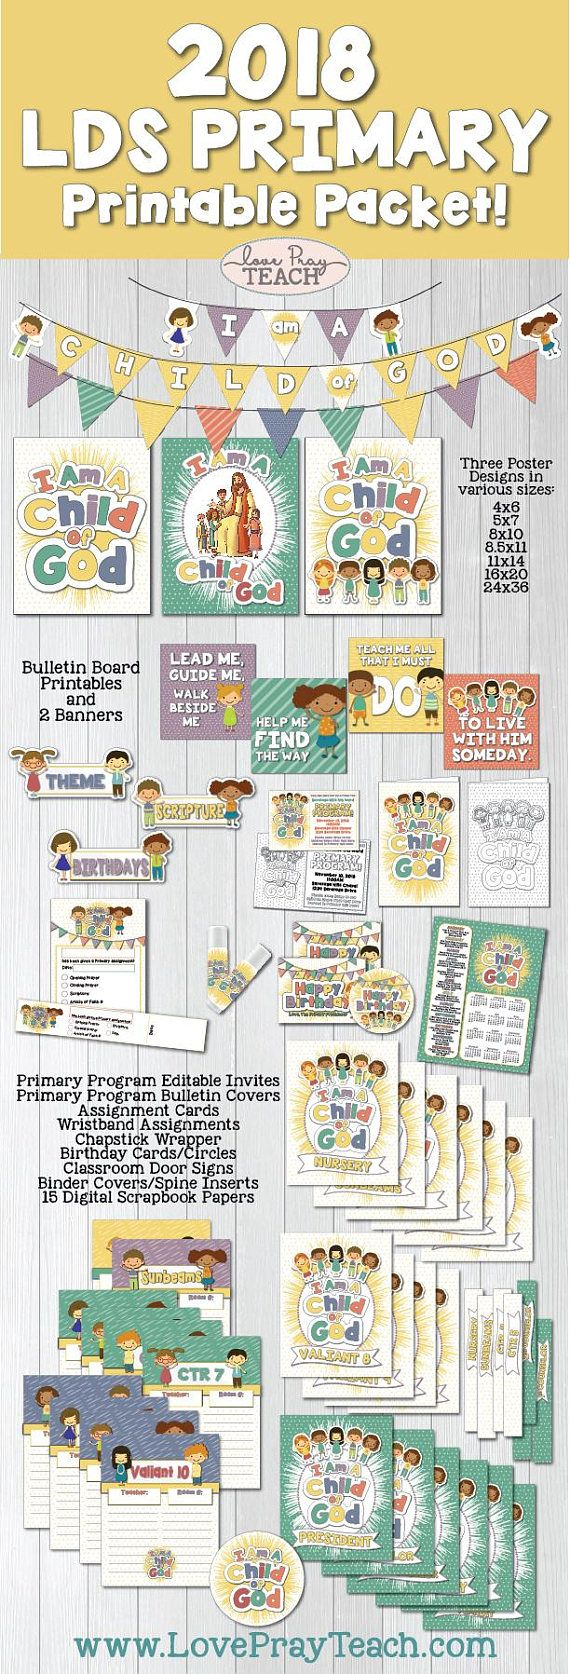 """2018 LDS Primary Theme Printable Packet """"I Am a Child of God"""" Includes posters, banners, bulletin board decorations, chapstick covers, bookmarks, assignment cards, assignment wristbands, classroom door signs, binder covers, binder spine inserts, Primary Program invitations and program cover, birthday cards and more!"""